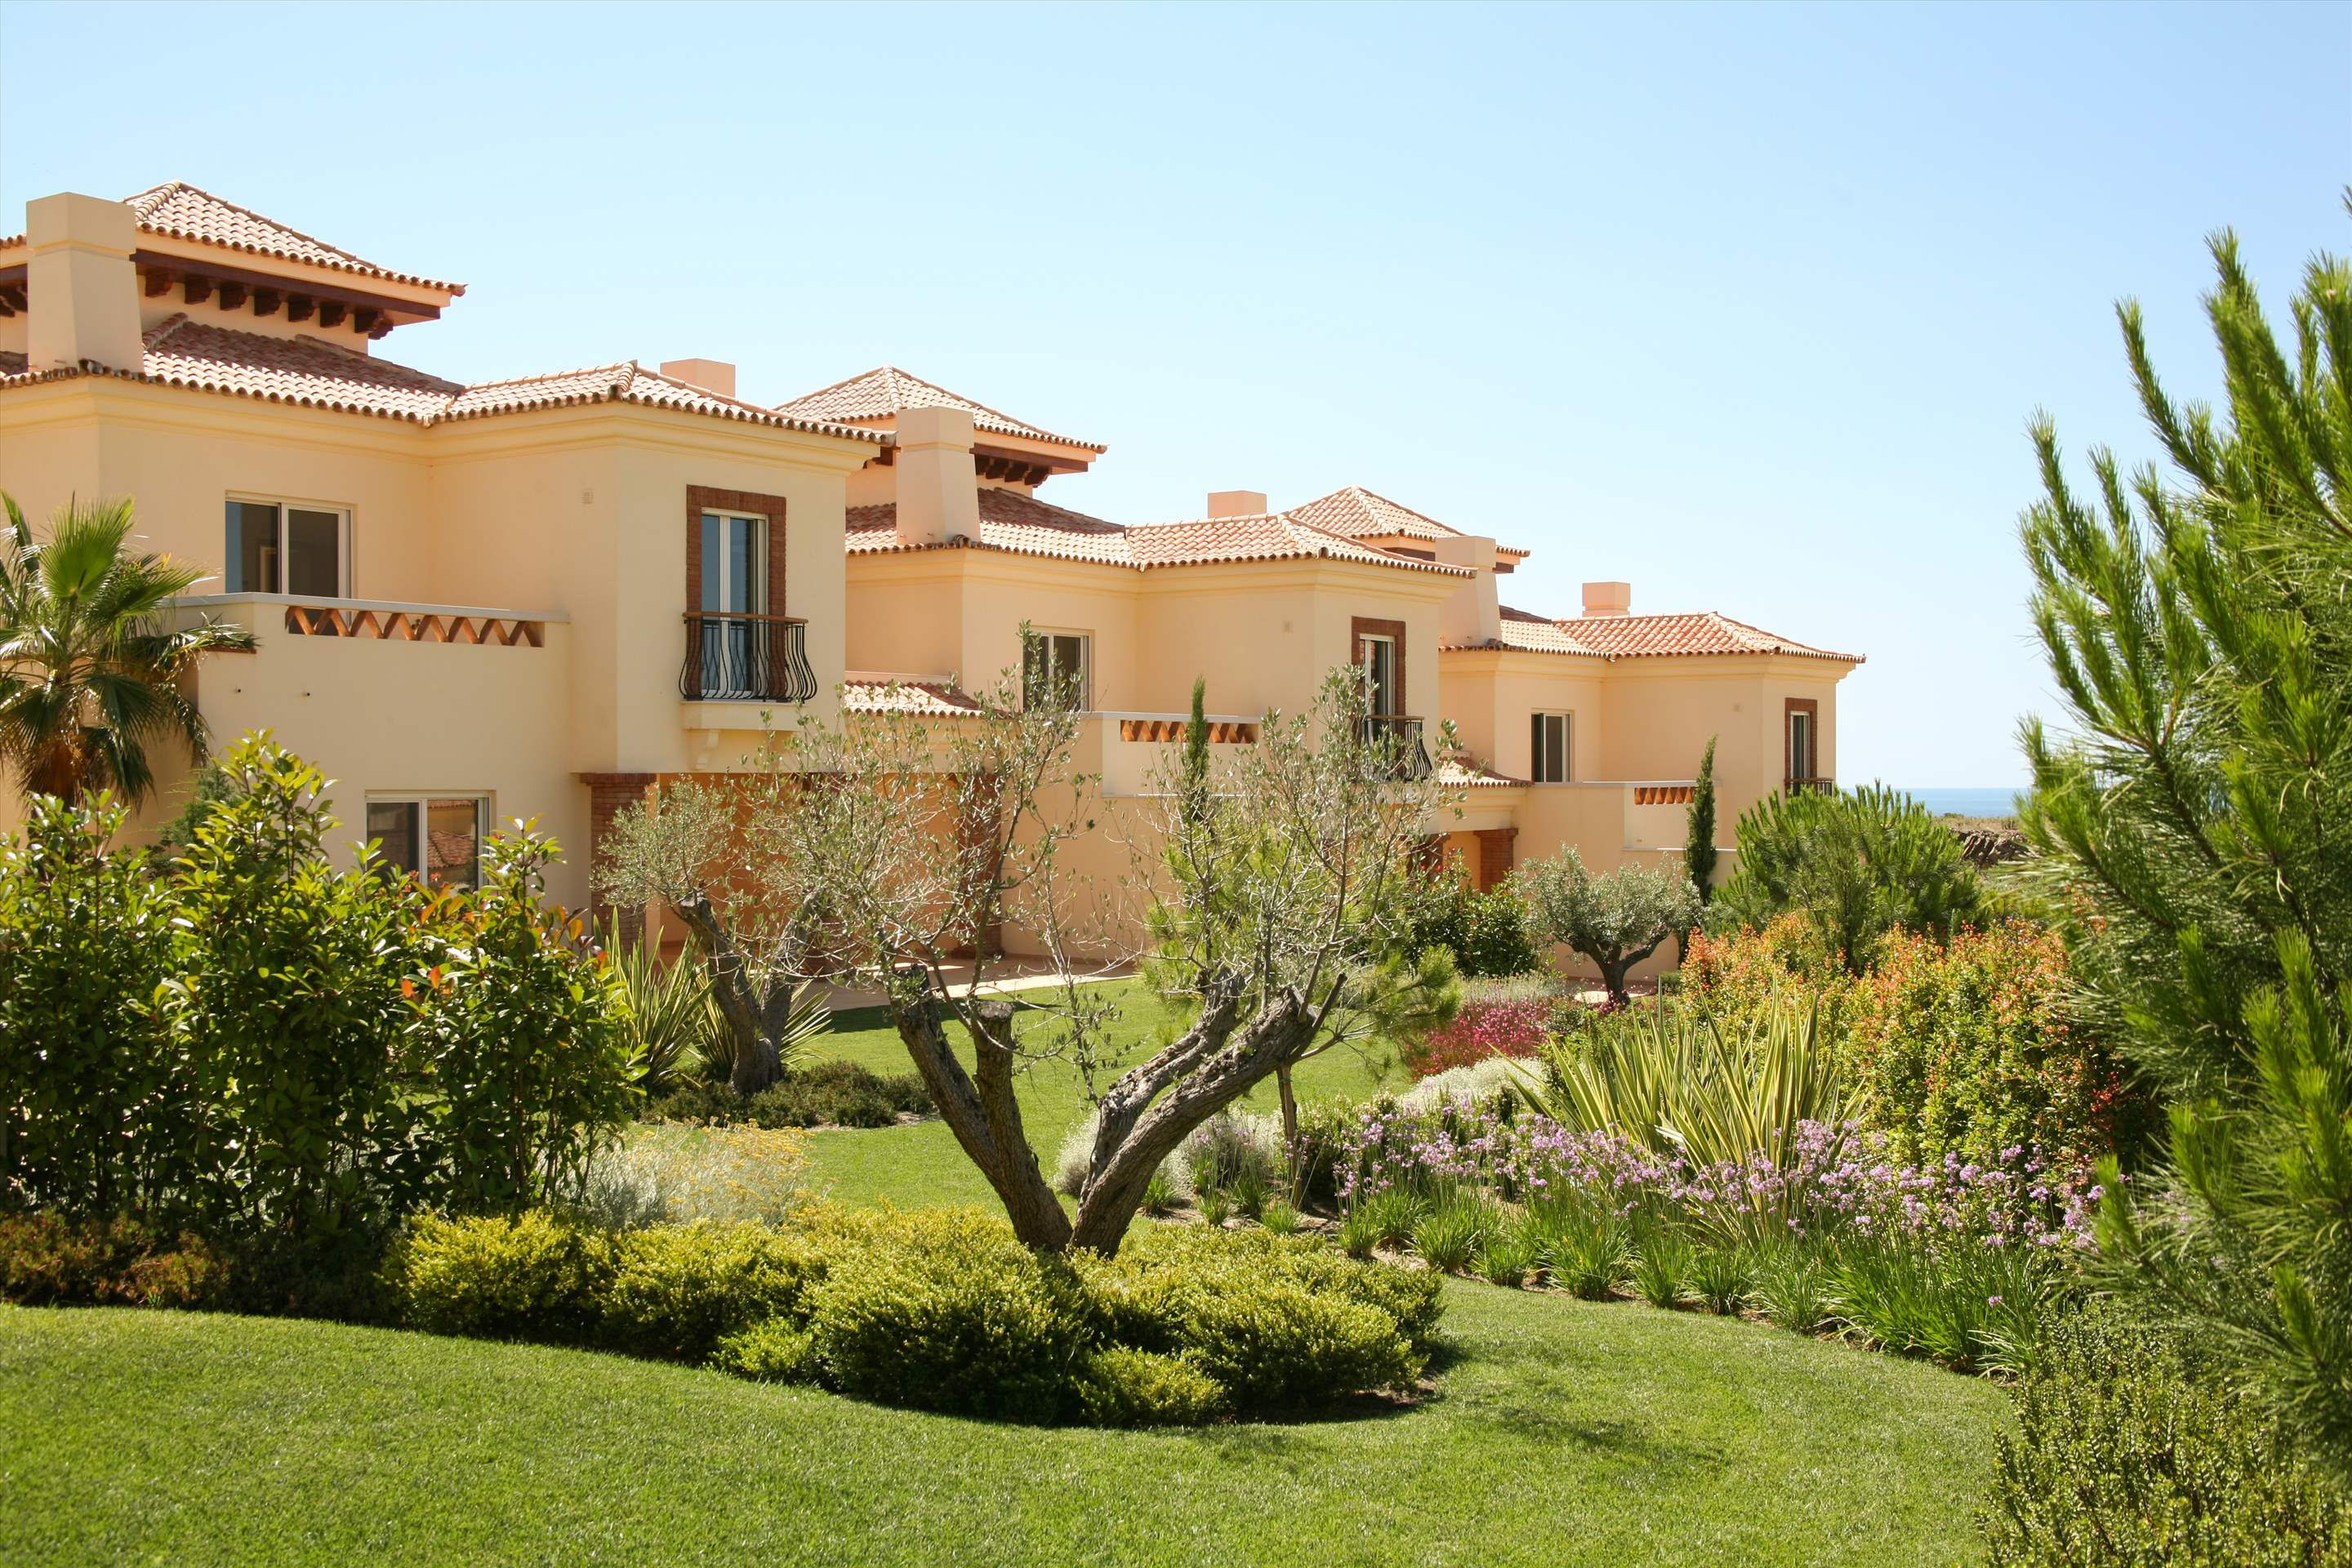 Monte Rei One Bedroom Linked Villa, 1 bedroom villa in Monte Rei Country Club, Algarve Photo #8